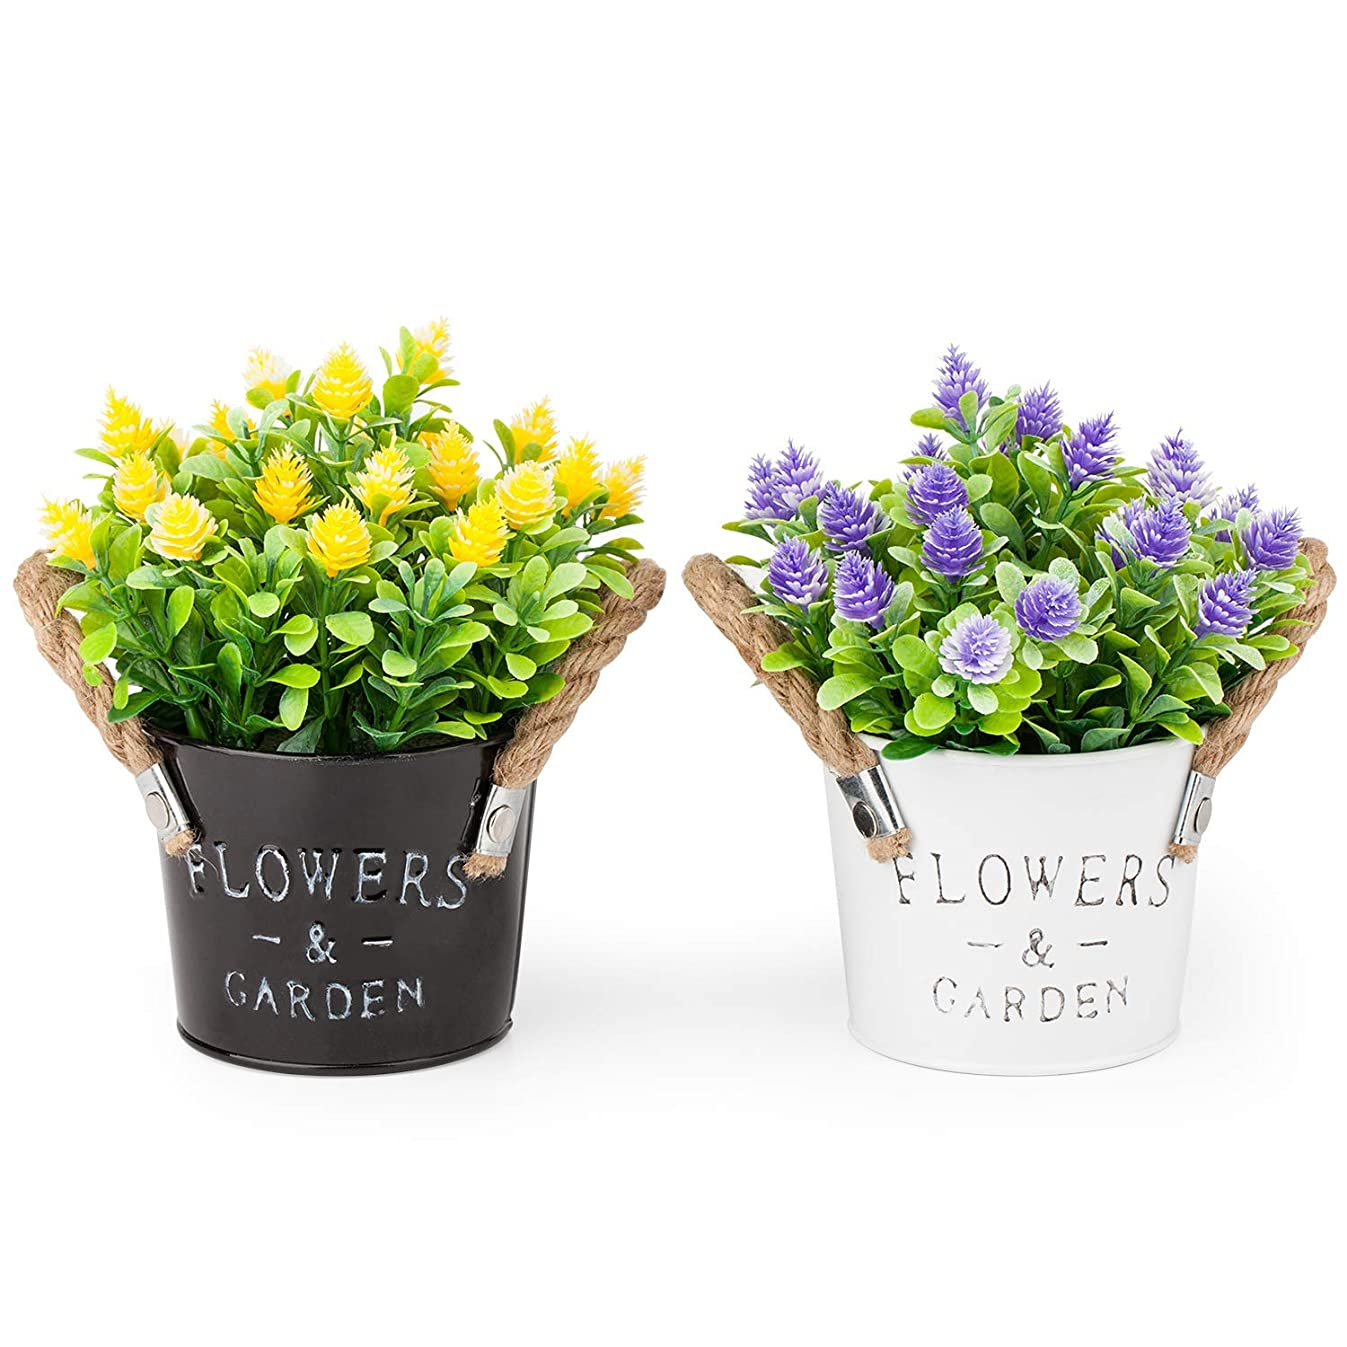 Pherypot Mini Artificial Potted Fake Fresh Flowers in Black and White Metal Pot for Home Decor - Set of 2 (Purple & Yellow with Green Grass)